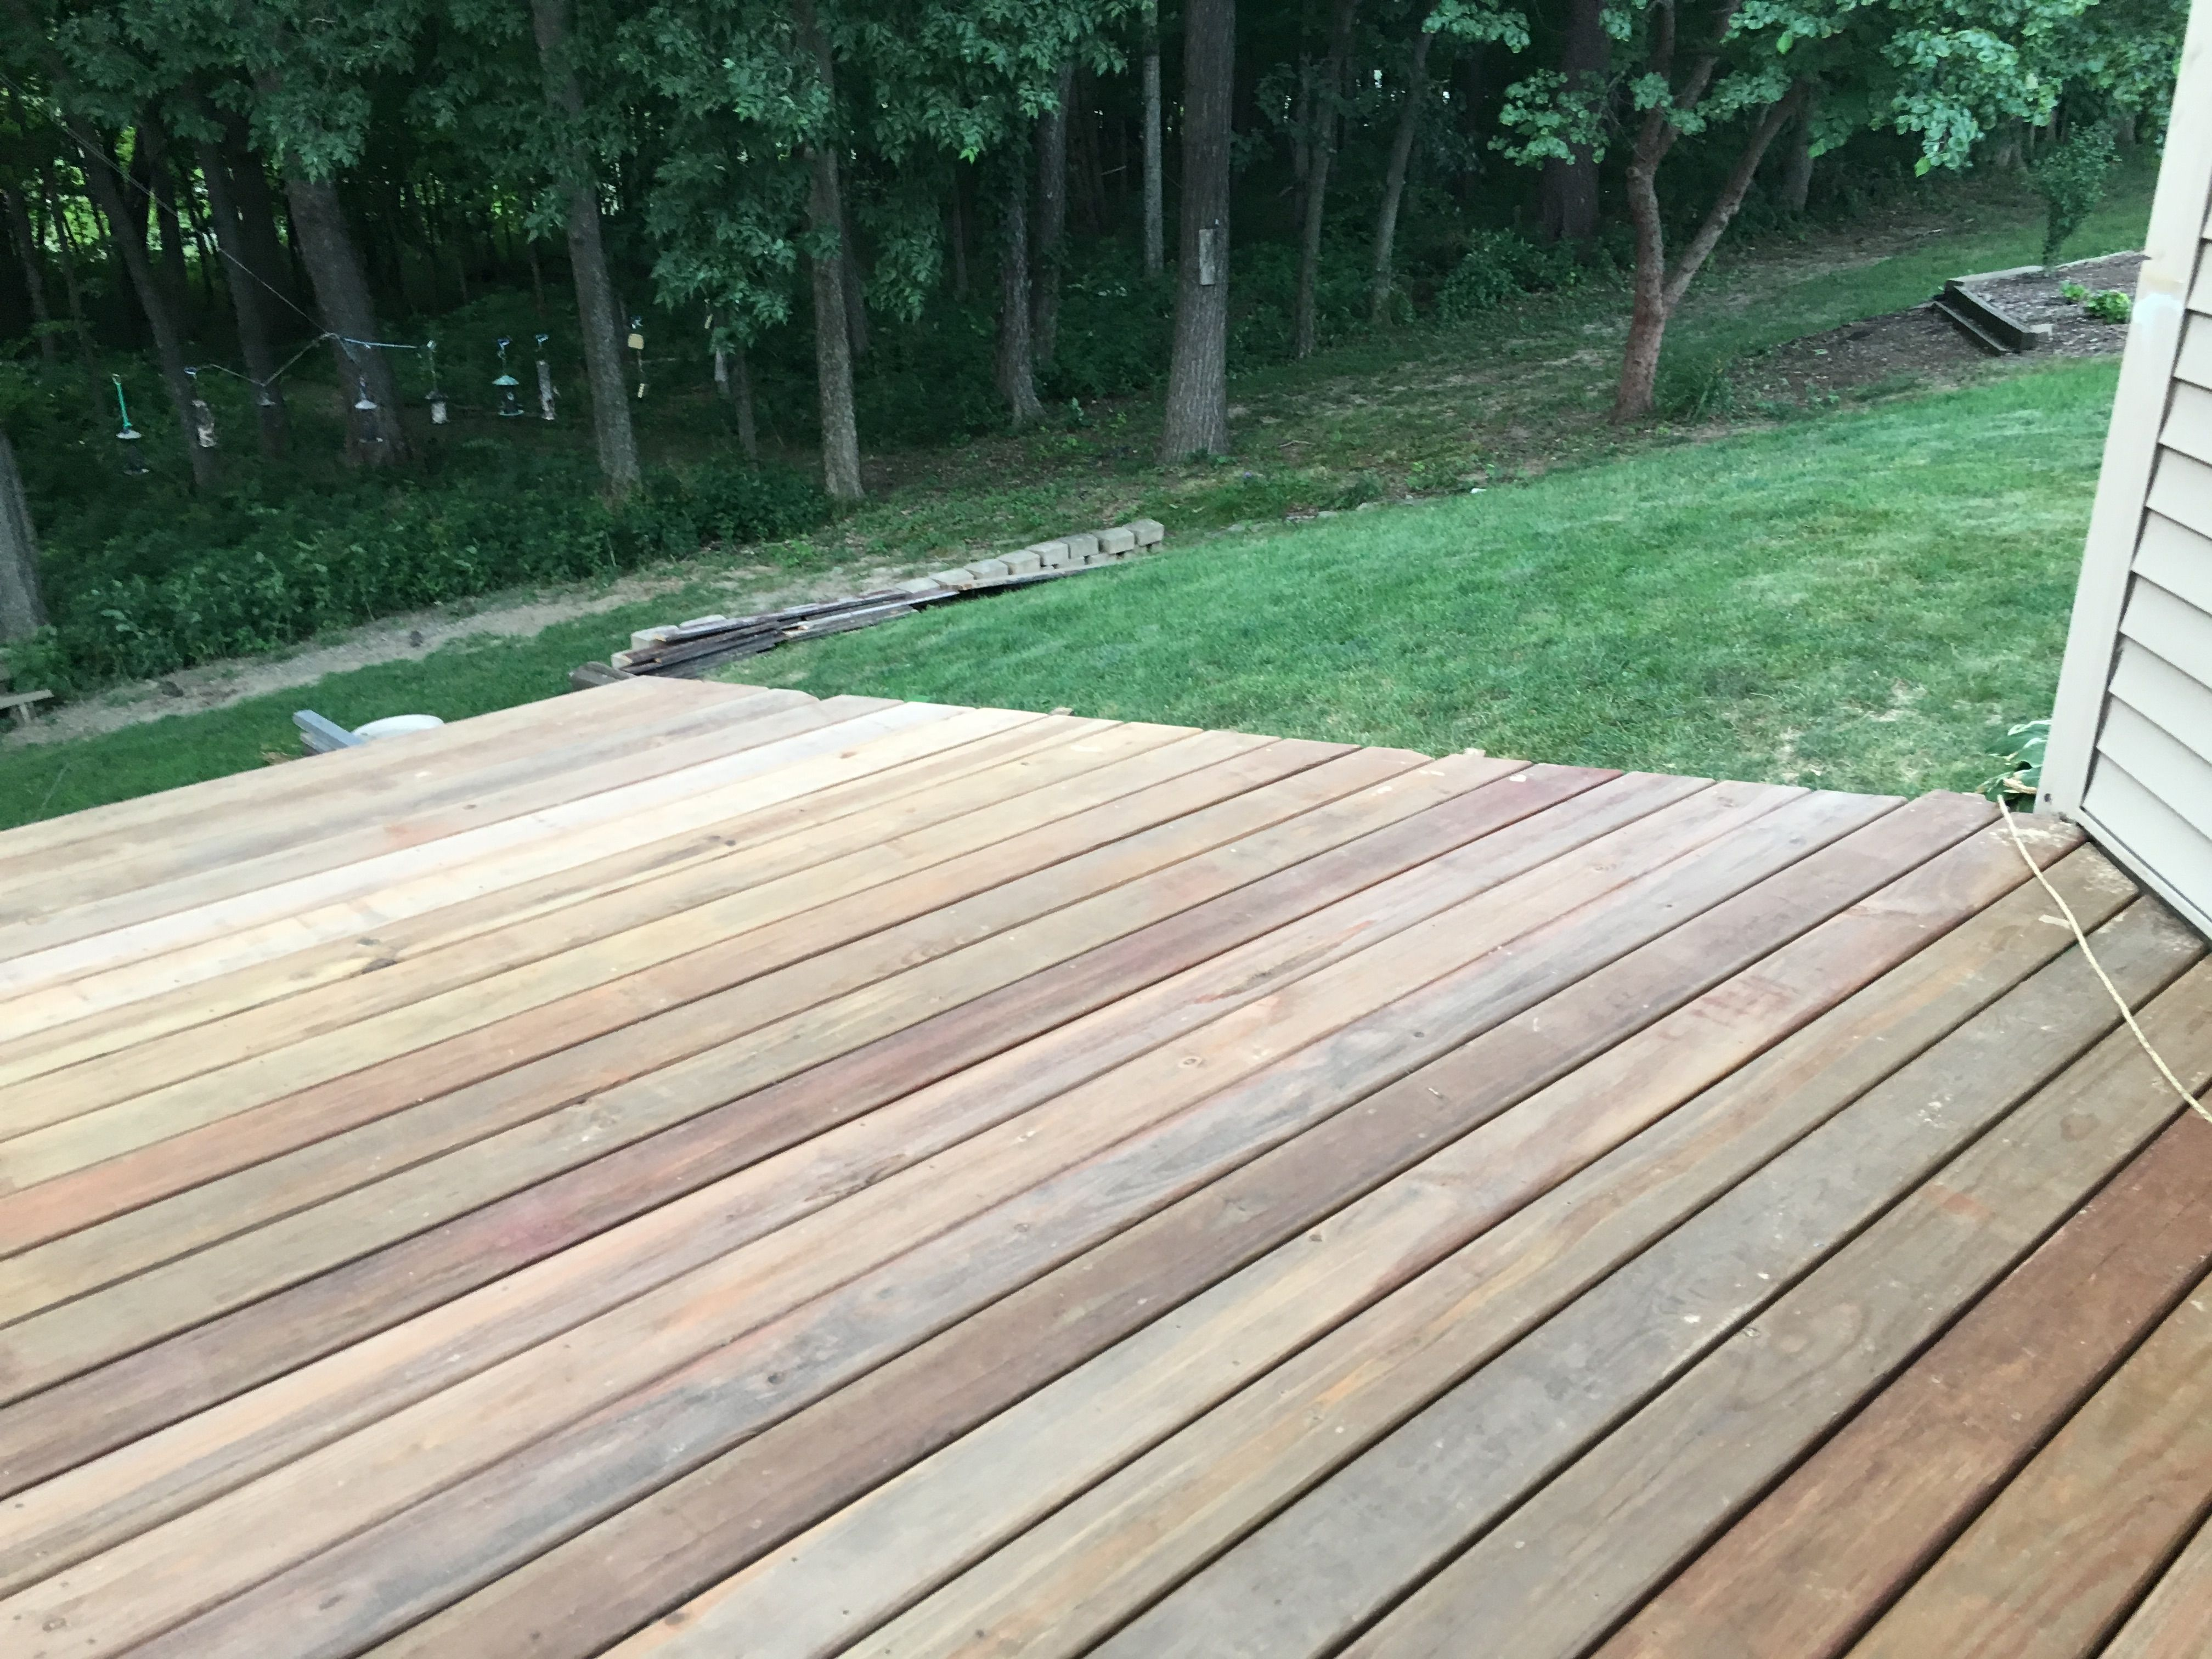 Diy Deck Renovation Started In March 2017 Completed Deck Board Installation June 2017 Ac2 Cedartone Deck Boards From Menards D Diy Deck Deck Renovation Deck